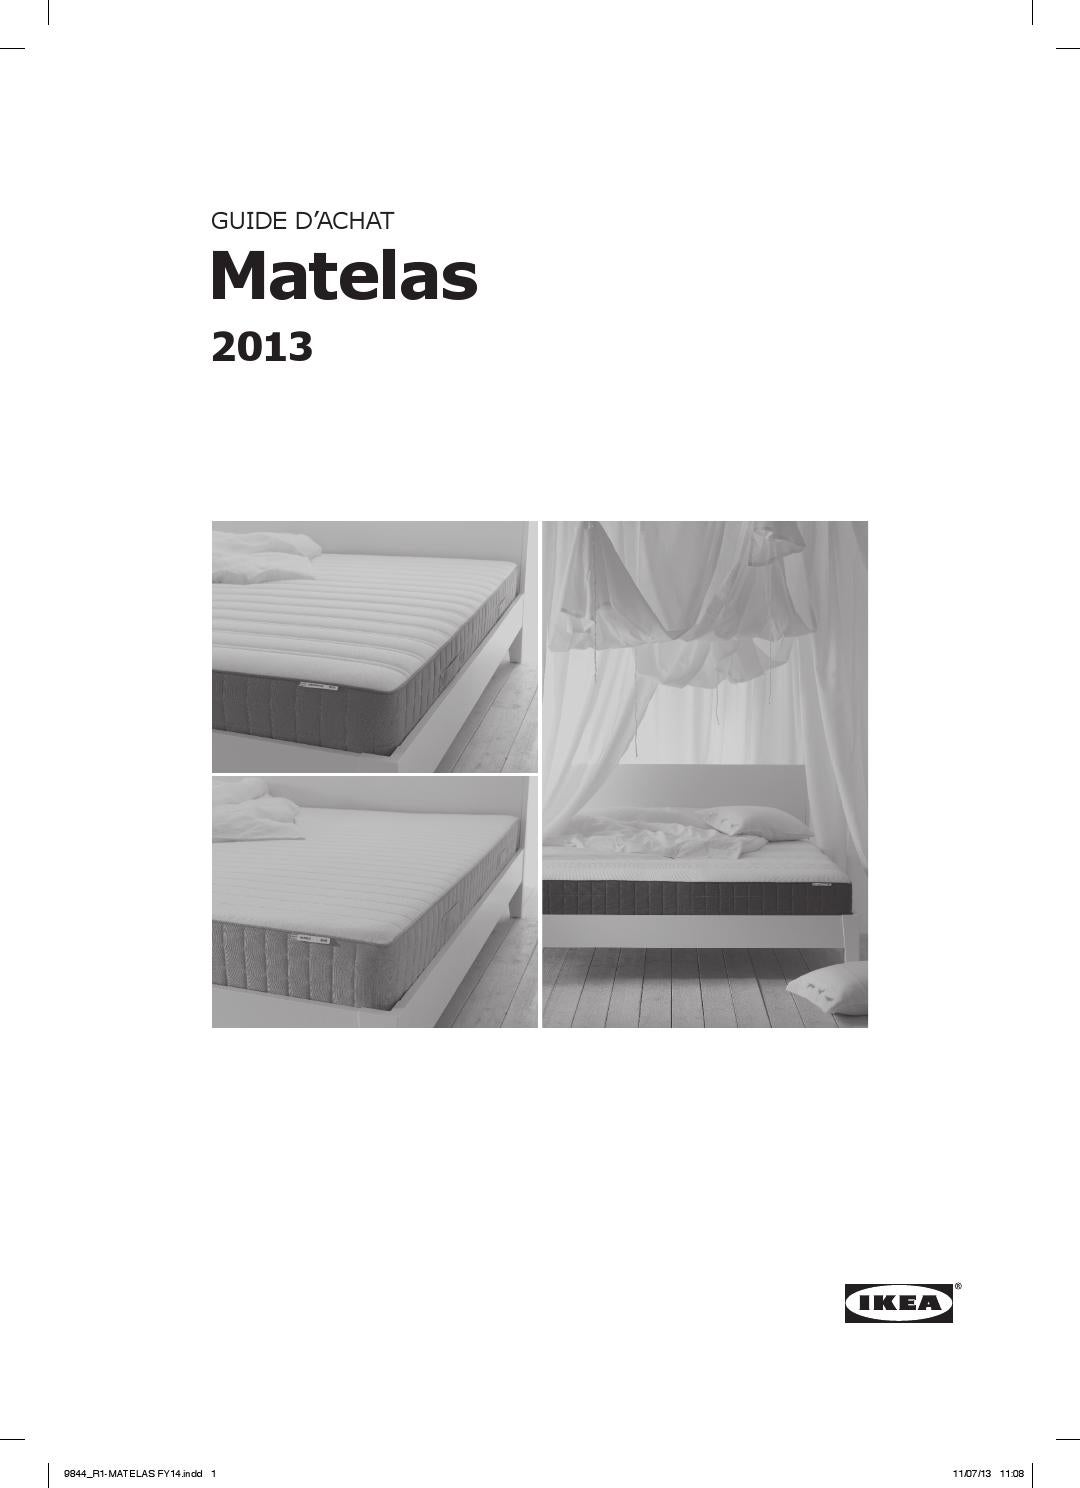 sultan matelas fr by ikea catalog issuu. Black Bedroom Furniture Sets. Home Design Ideas